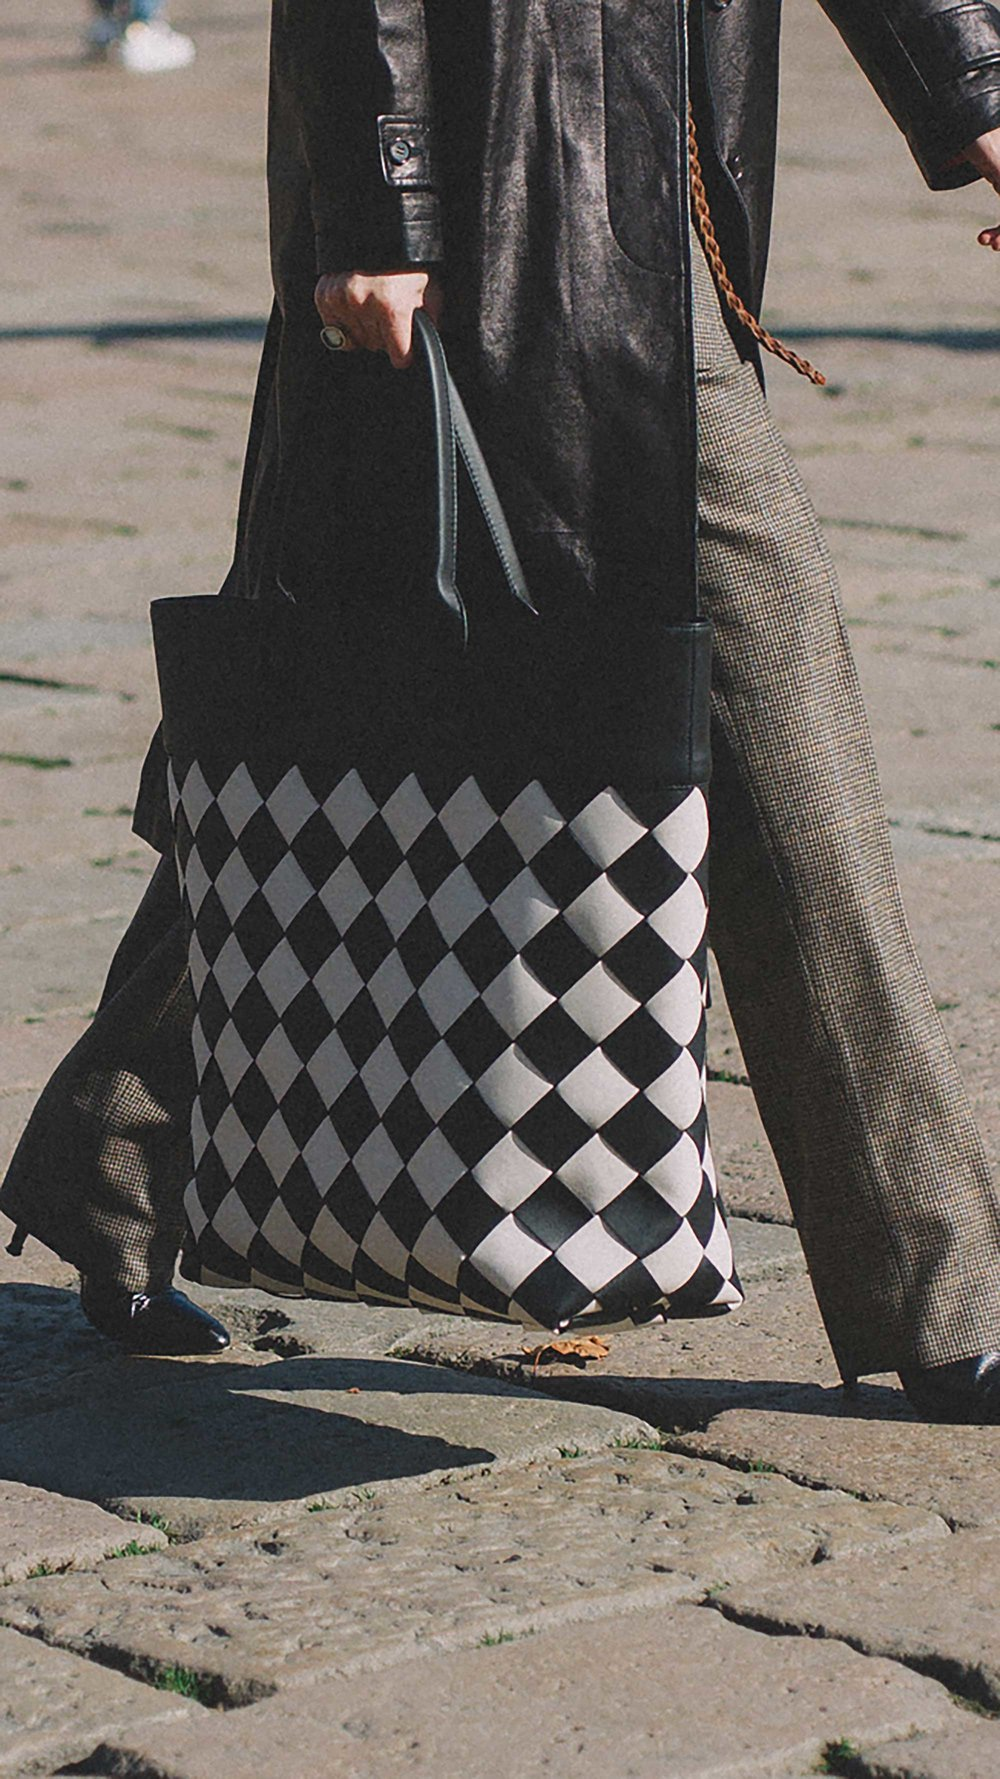 est outfits of Milan Fashion Week street style day two MFW FW19 31.jpg